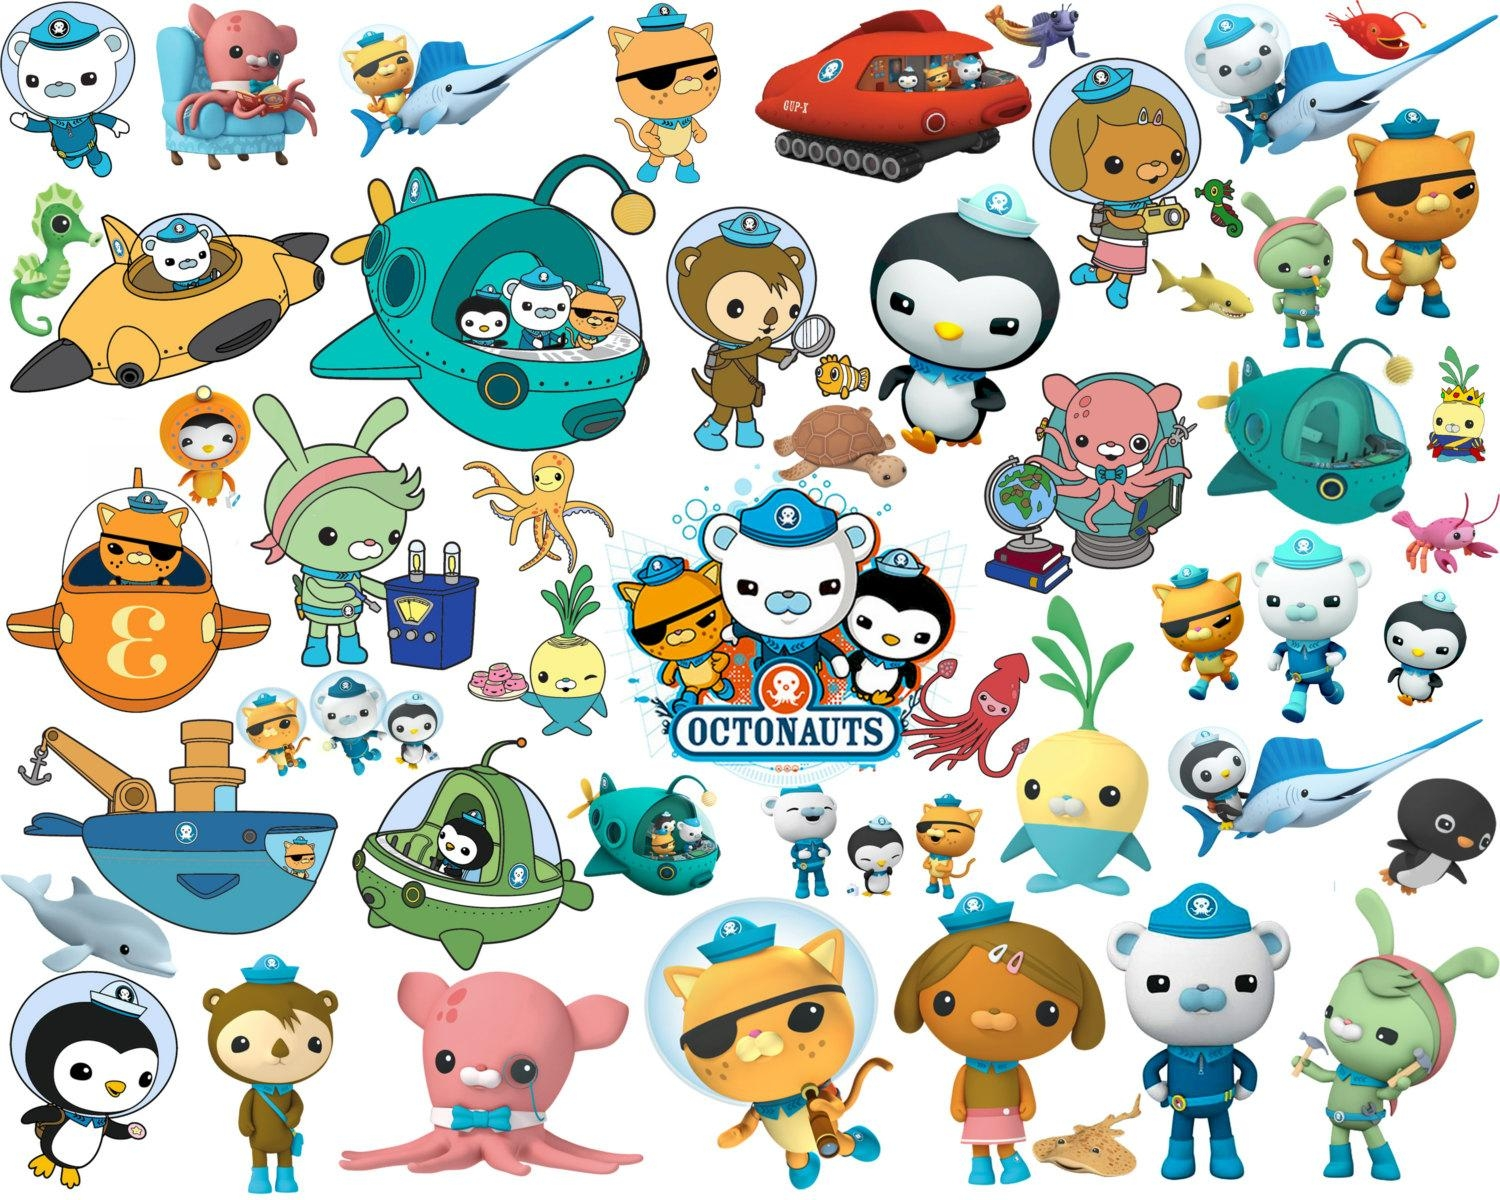 74 Octonauts Clipart And Silhouette Octonauts Clipart for Octonauts Wall Art